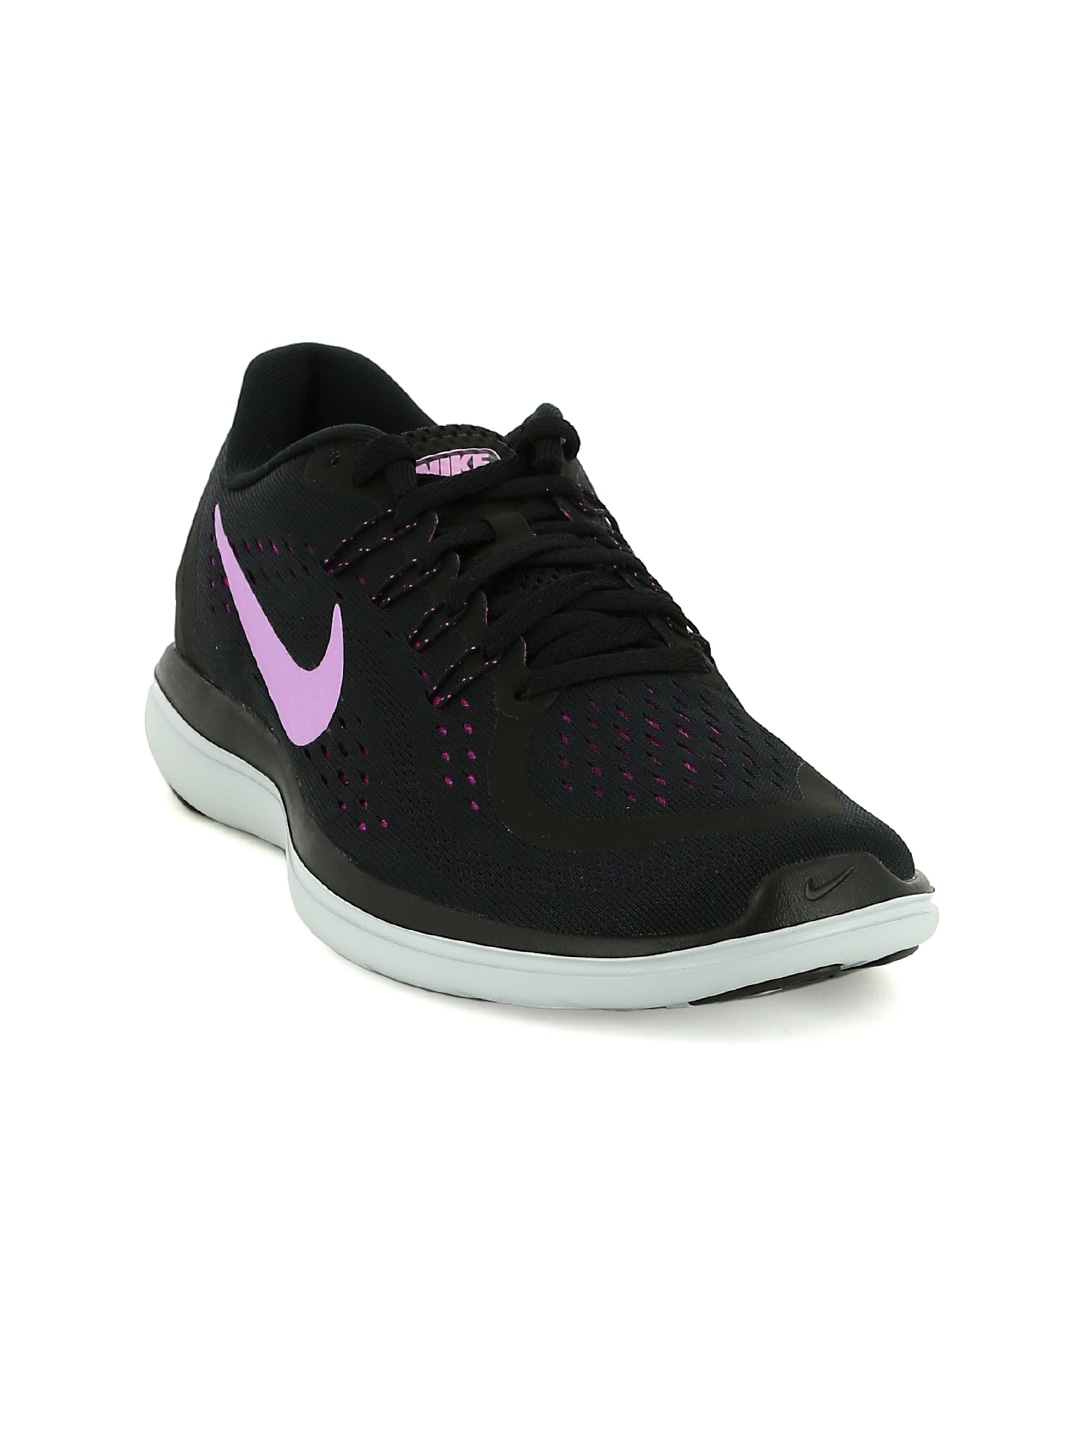 Women s Nike Shoes - Buy Nike Shoes for Women Online in India 1f7d1d5d1f